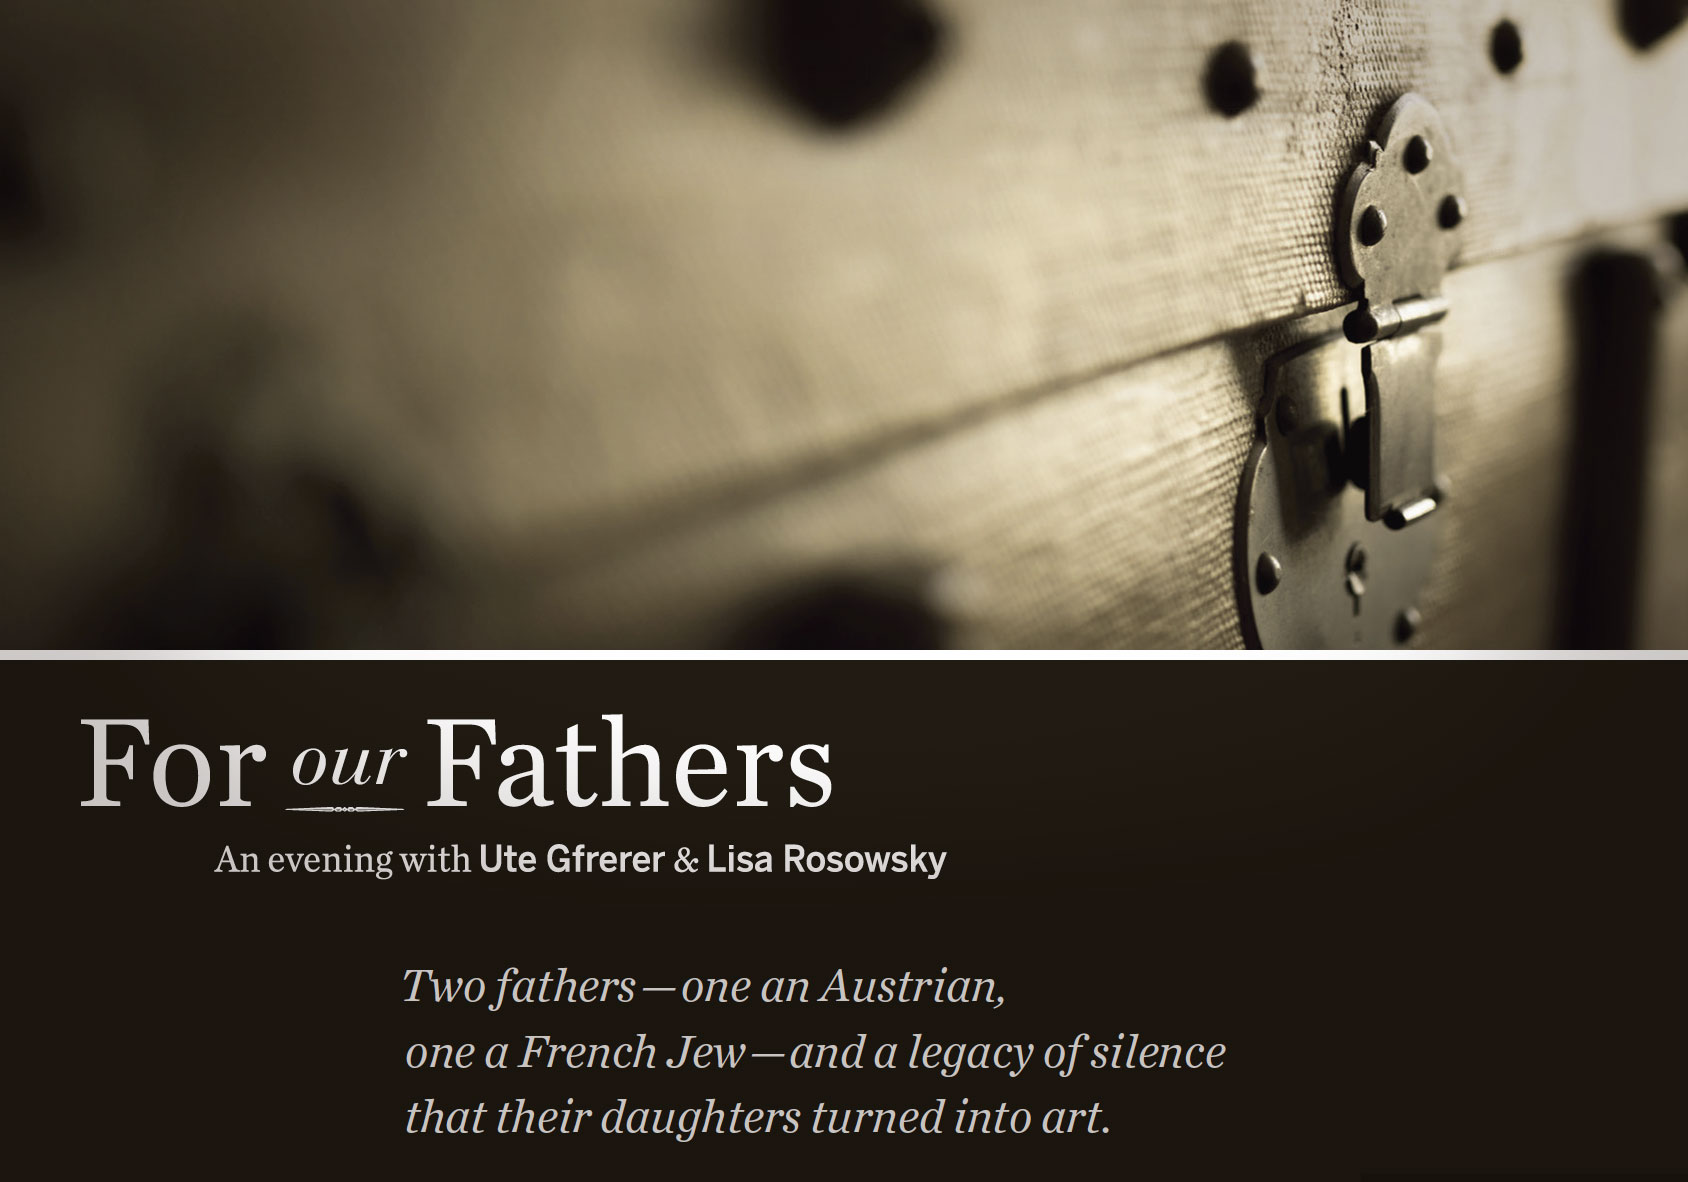 For our Fathers